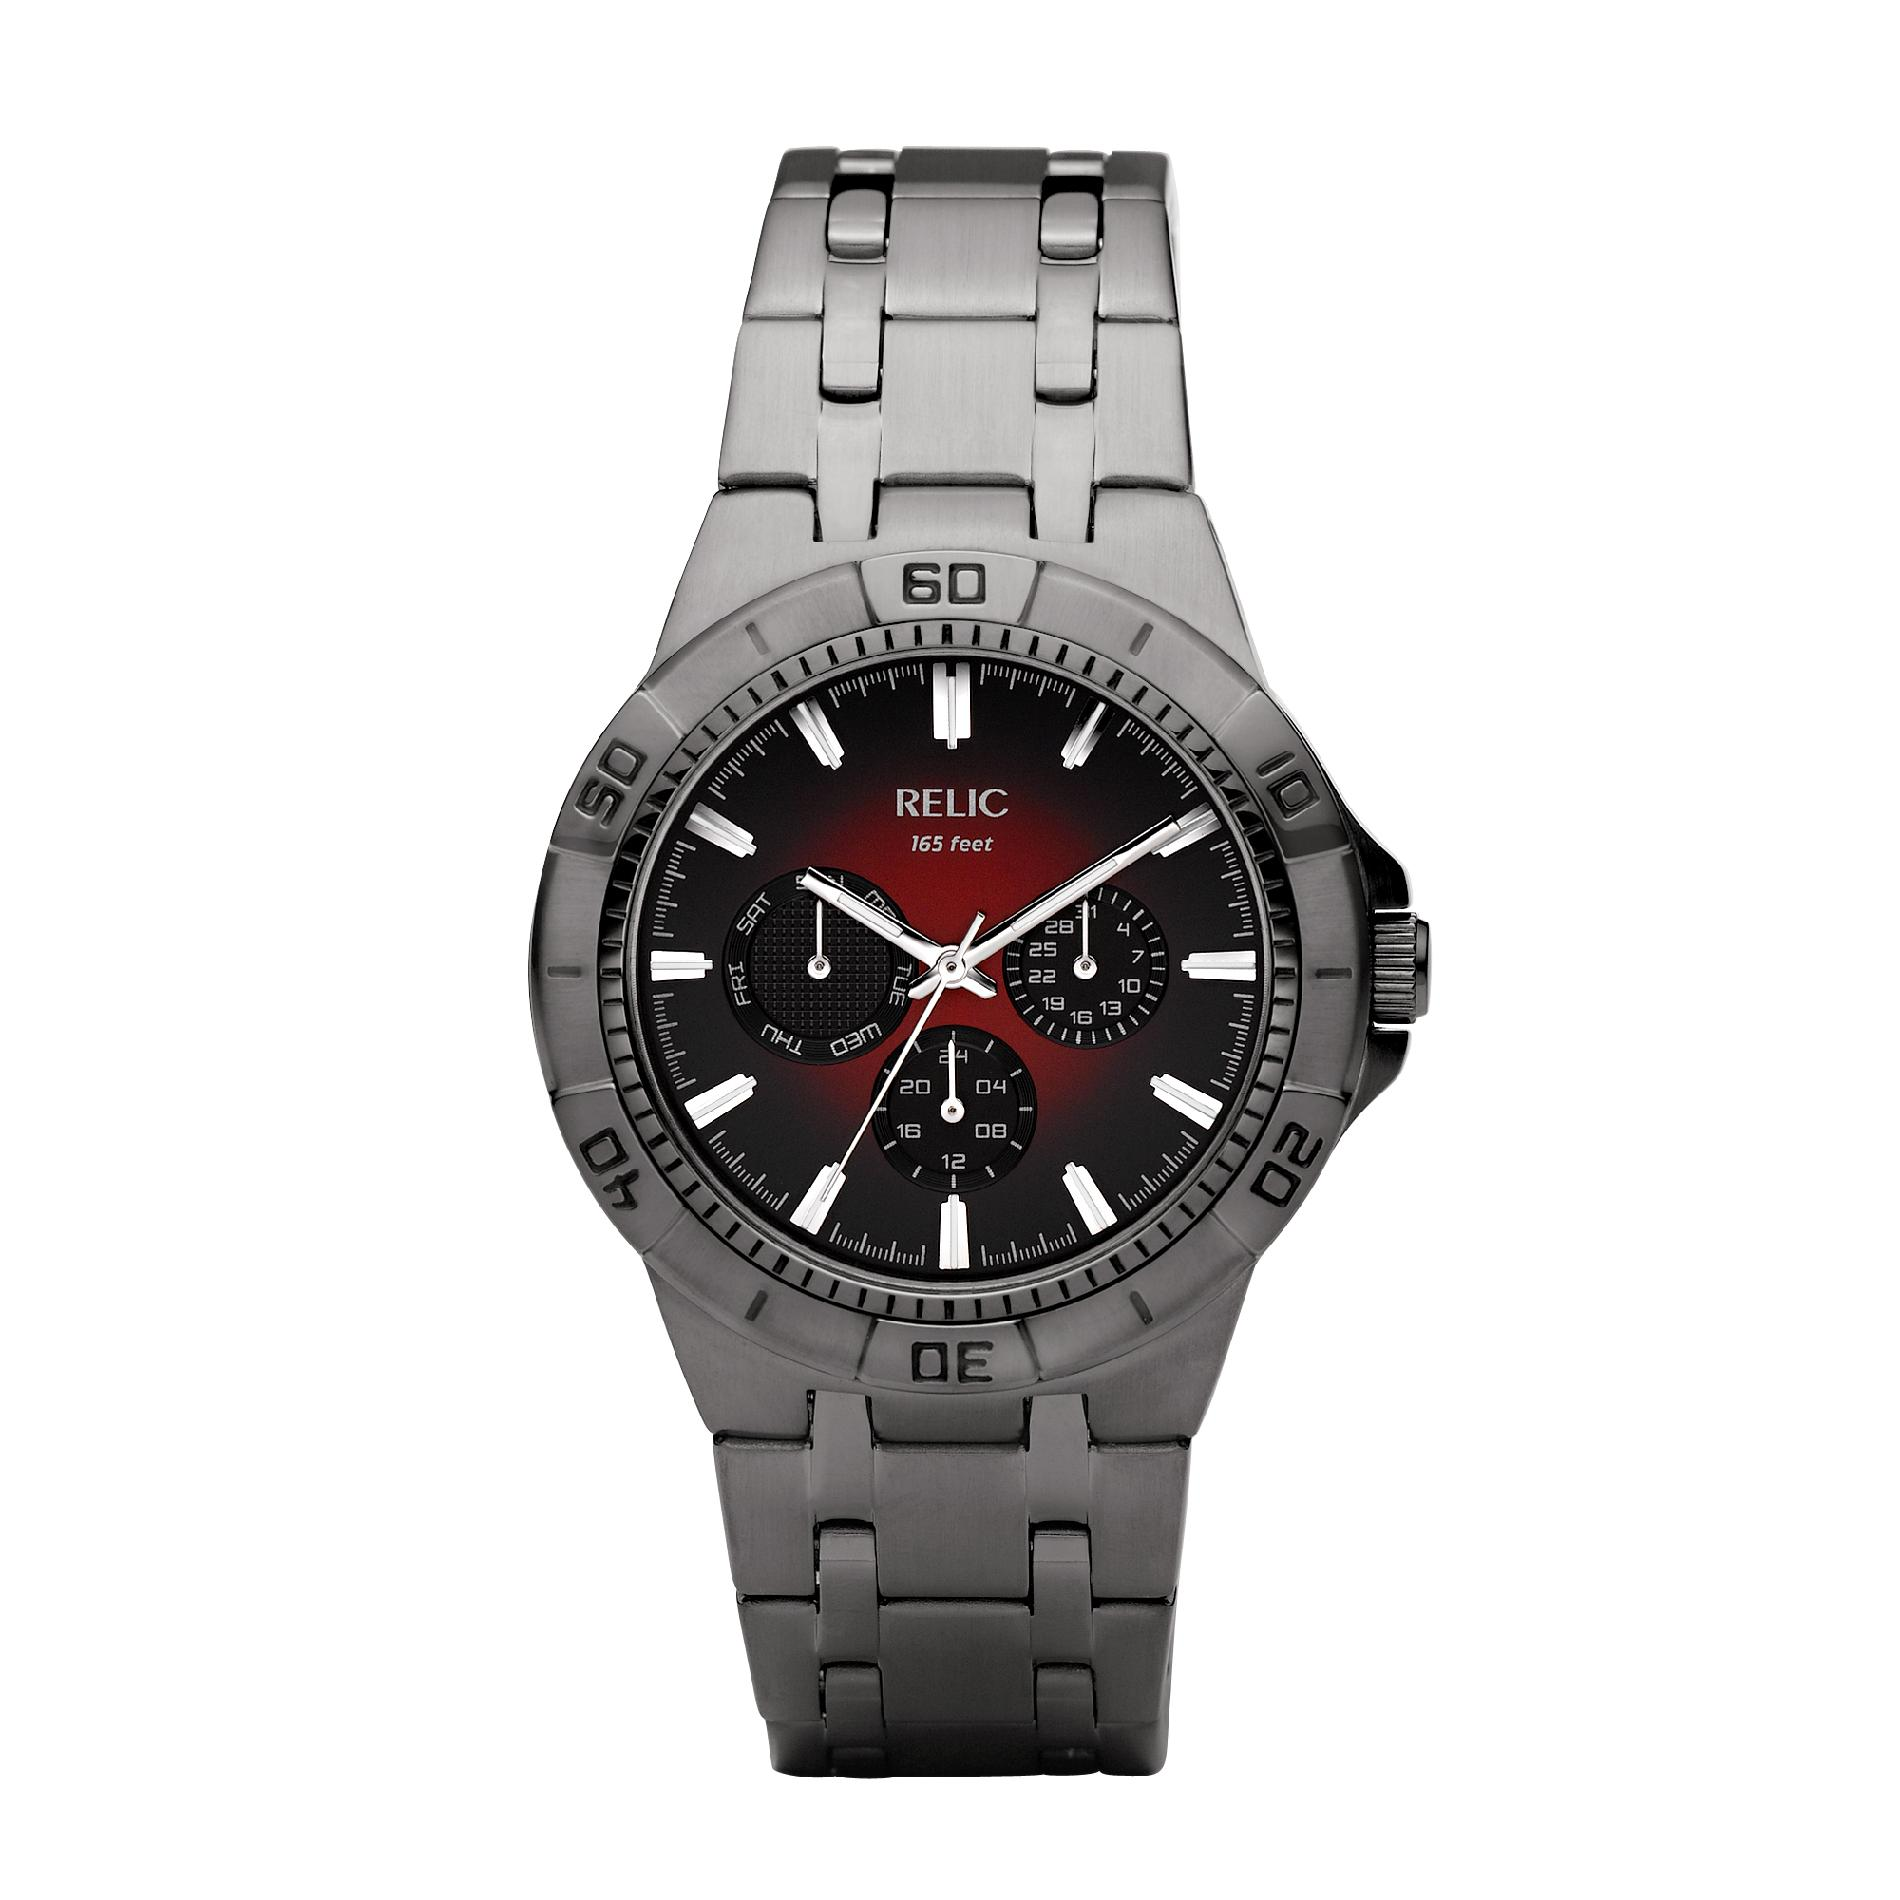 Relic Men's Chronograph Gunmetal Bracelet Watch with Black and Red Multi-Dial PartNumber: 04415313000P KsnValue: 04415313000 MfgPartNumber: ZR15514